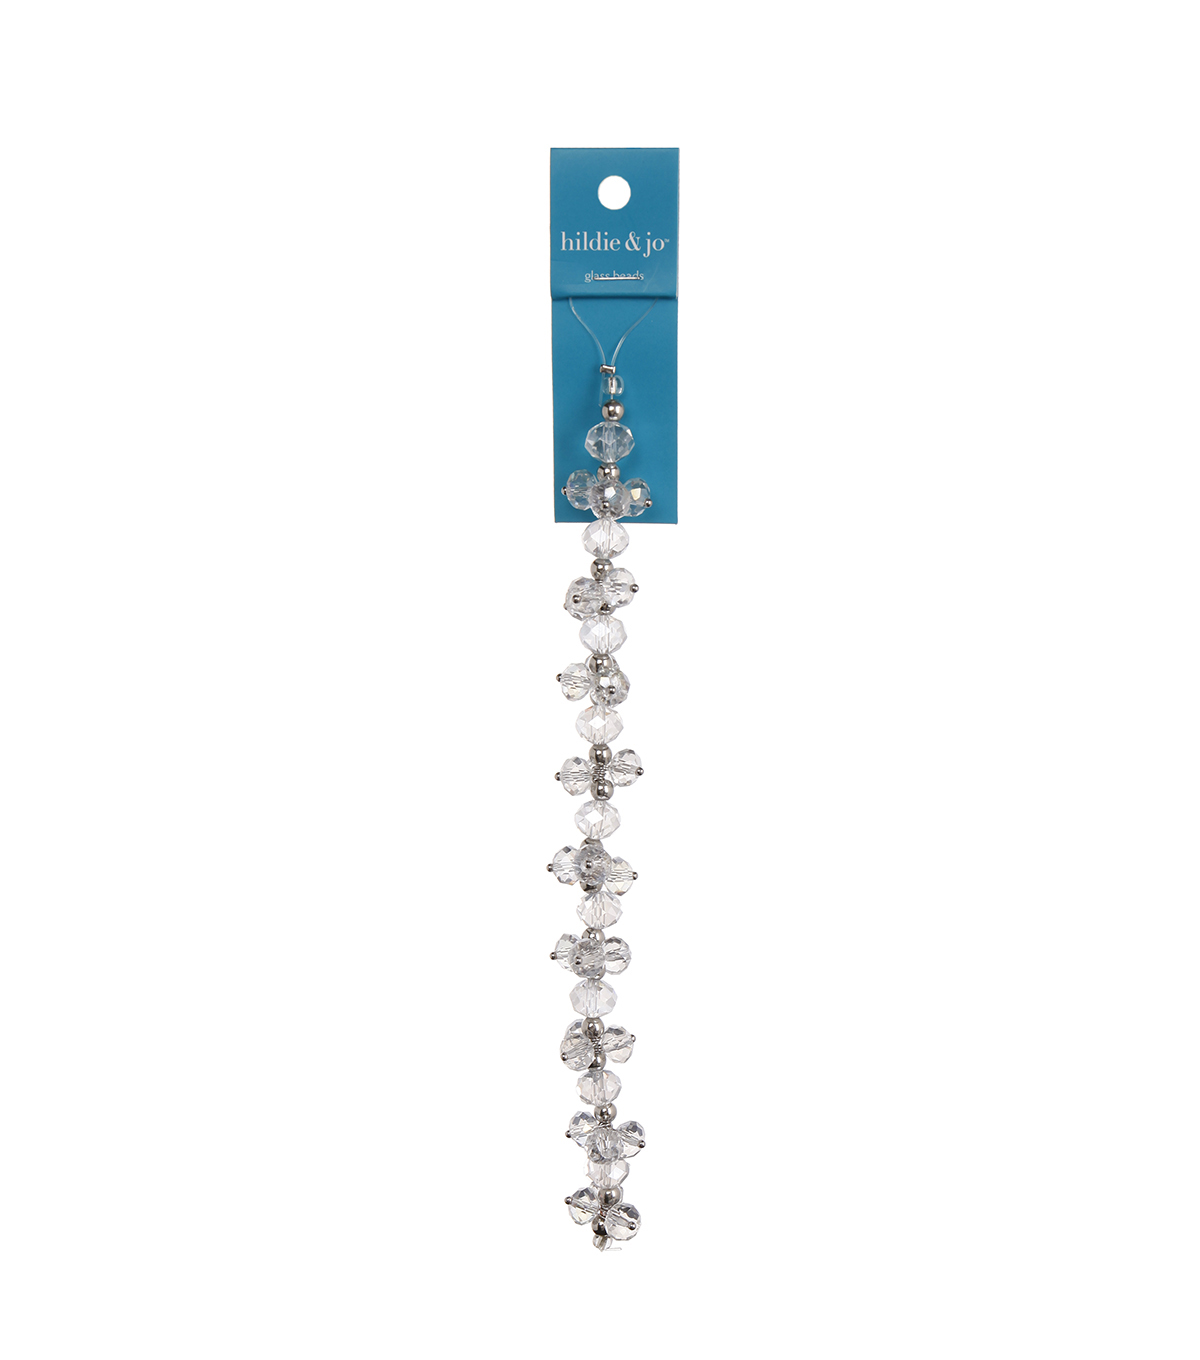 Blue Moon Beads 7\u0022 Crystal Strand, Dangles, Clear